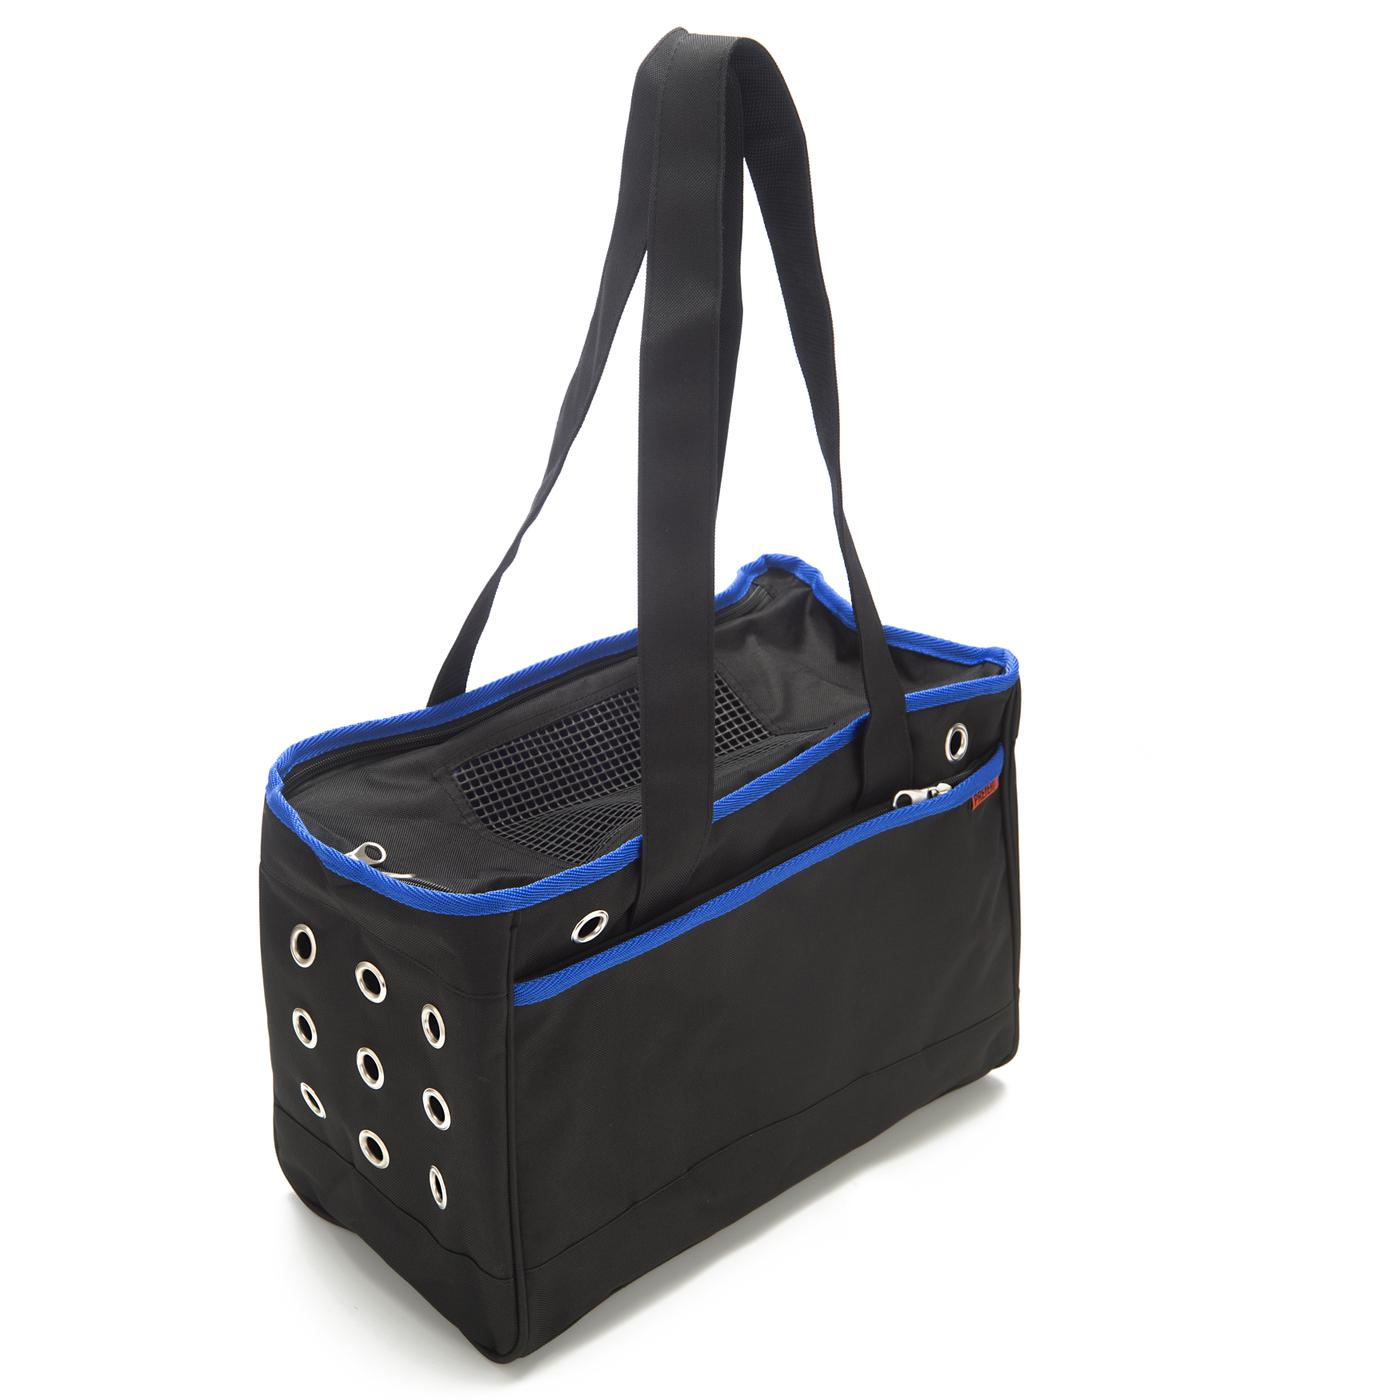 949 Urban Tote Carrier, Blue